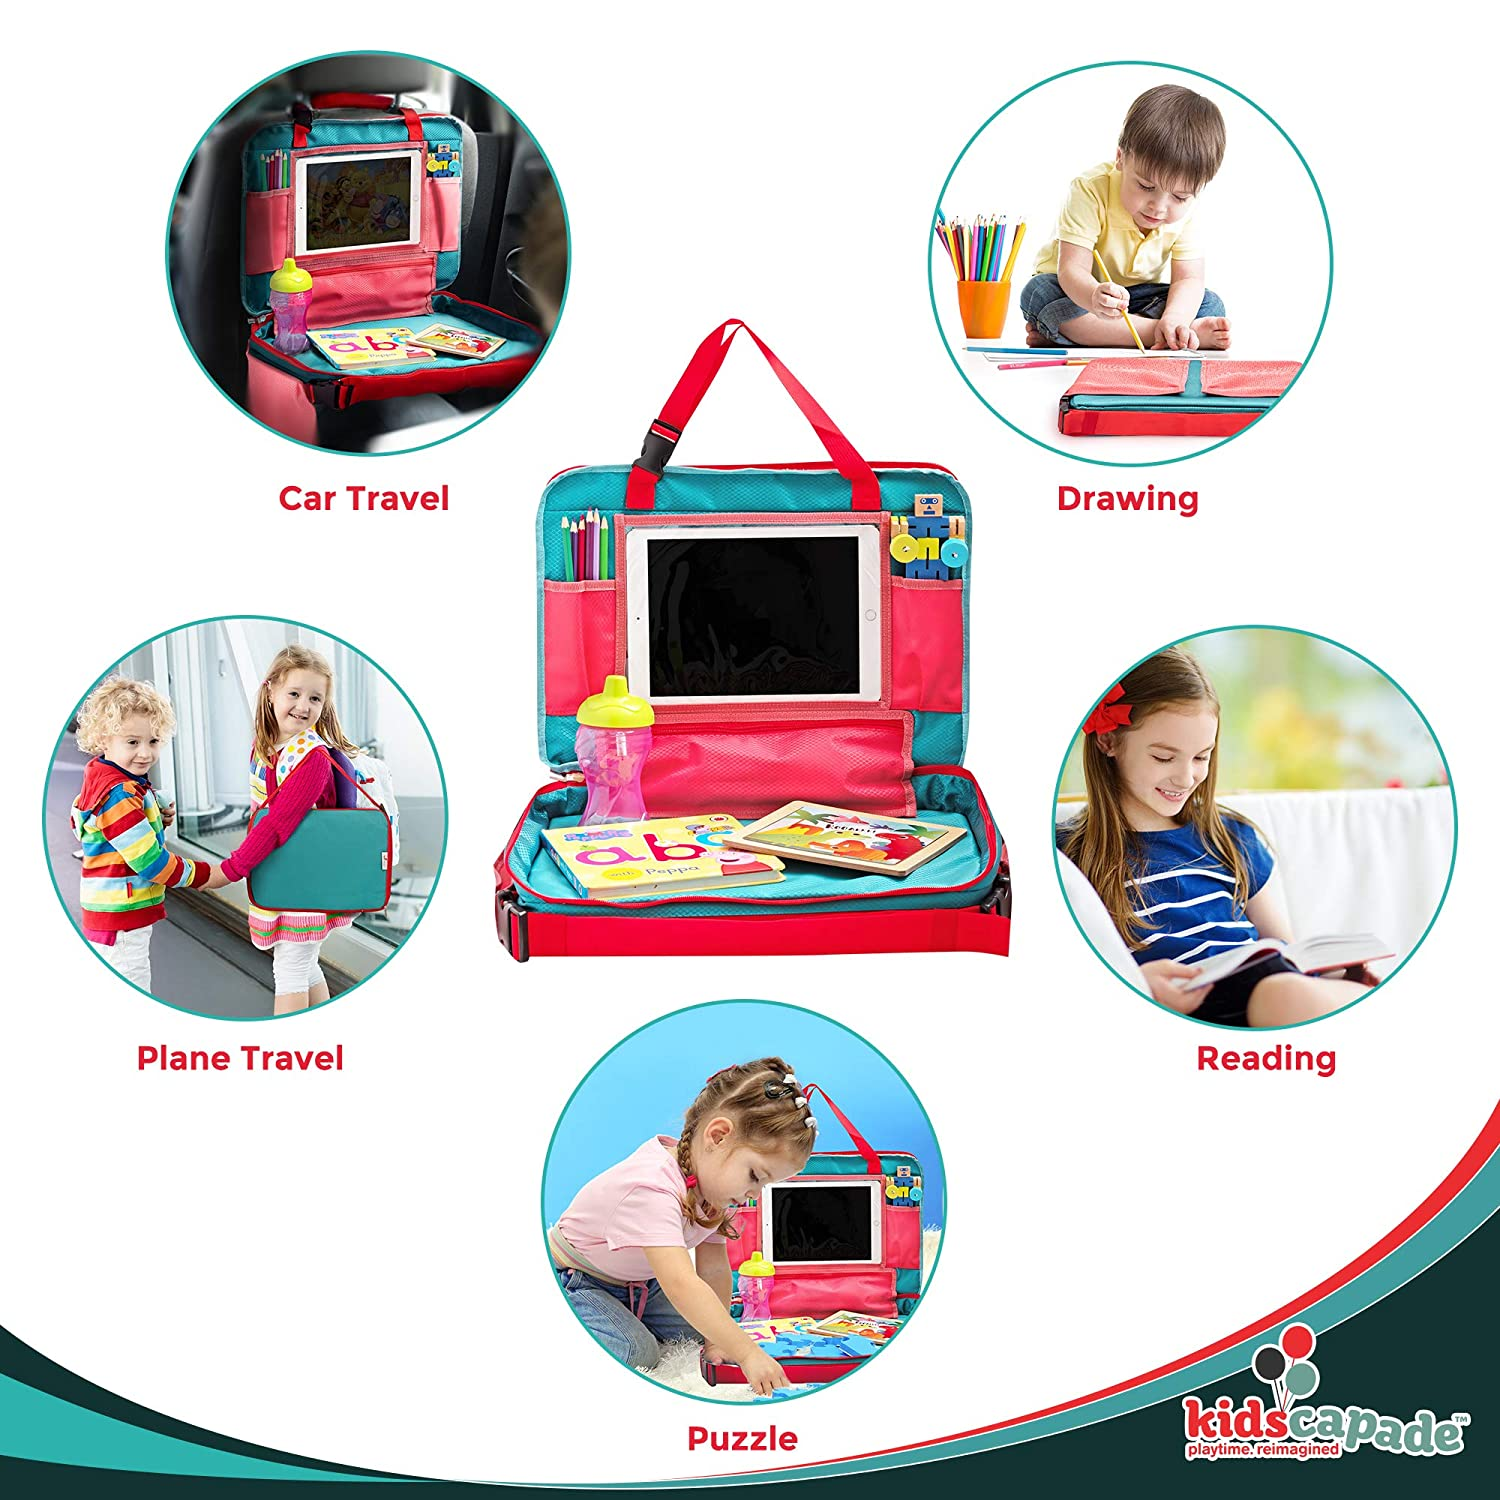 Kidscapade Kids Travel Tray Activity Lap Desk Carry Bag /& Backpack Keeps Toddlers Busy and Quiet Travel Organizer for Car Seat Snack Stroller Or Plane Portable and Detachable with Free eBook